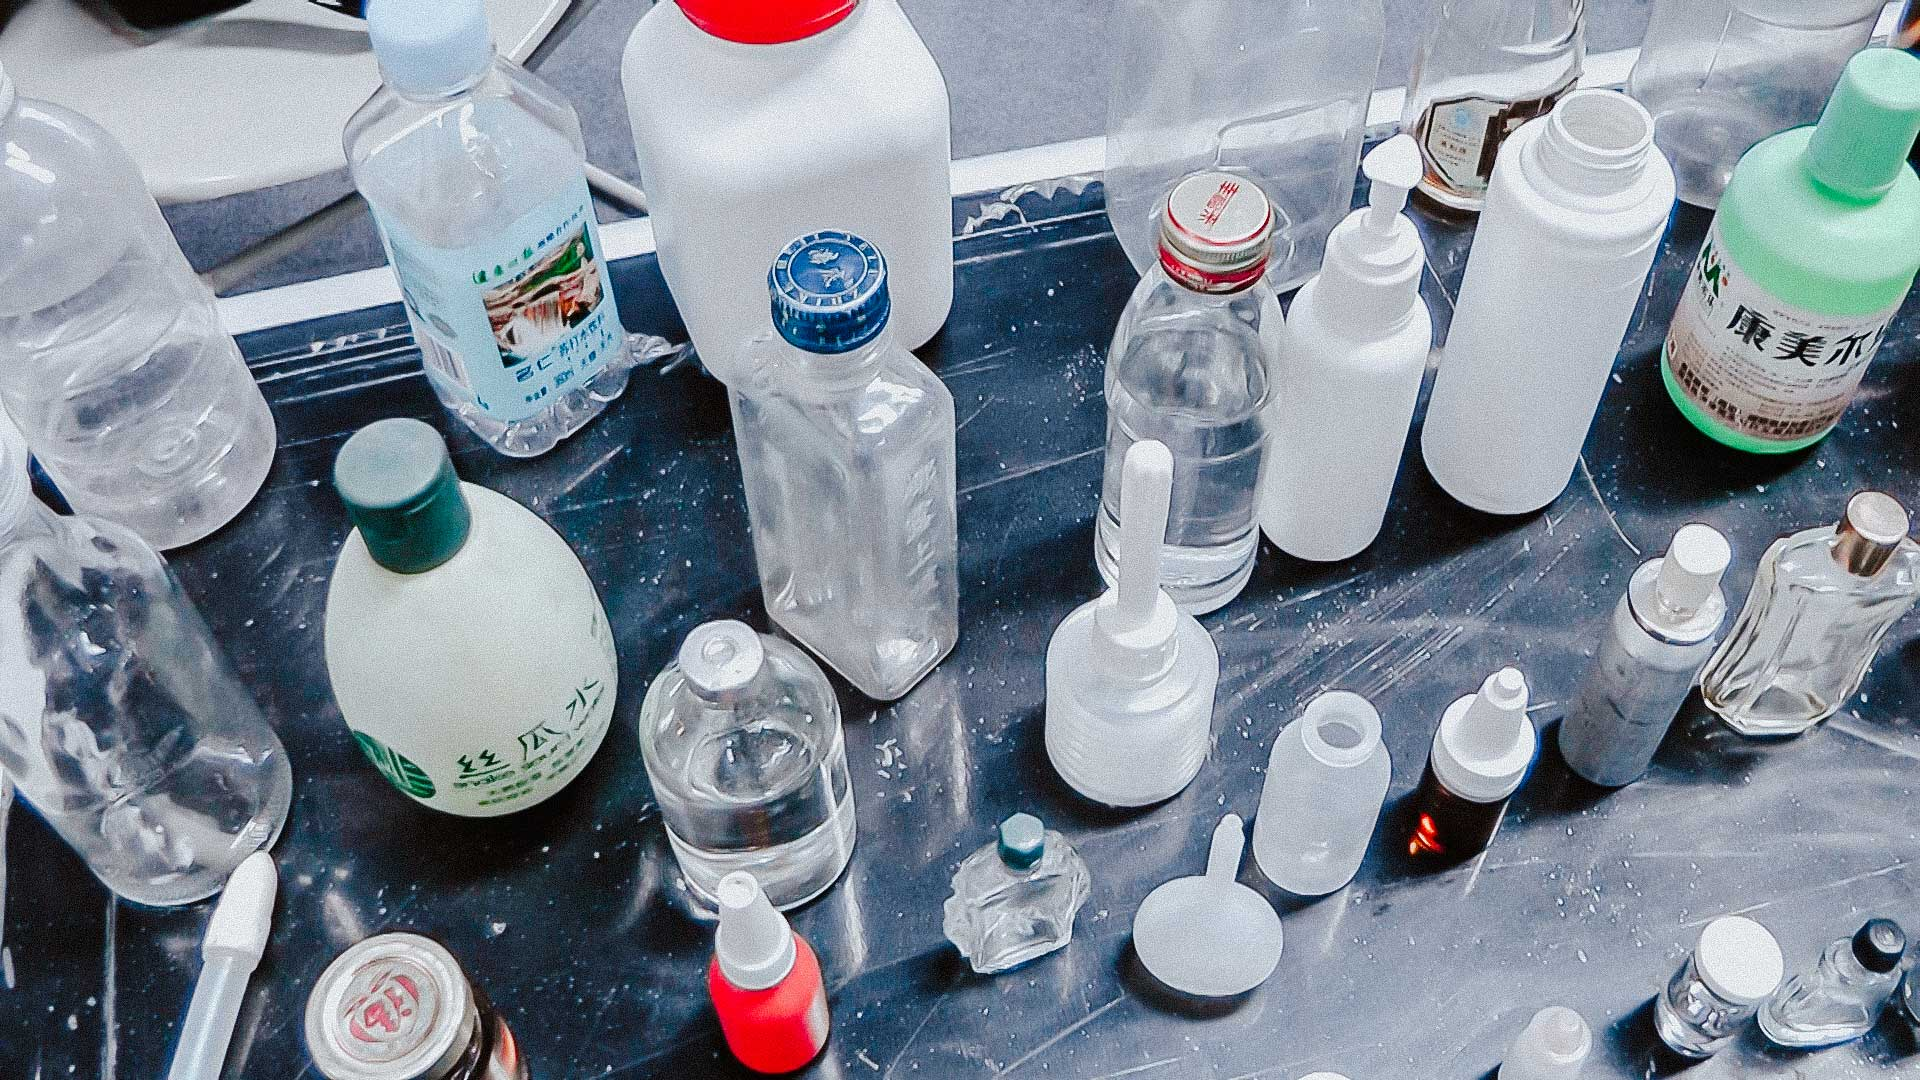 Various samples of glass and plastic bottles for filling in and plugging